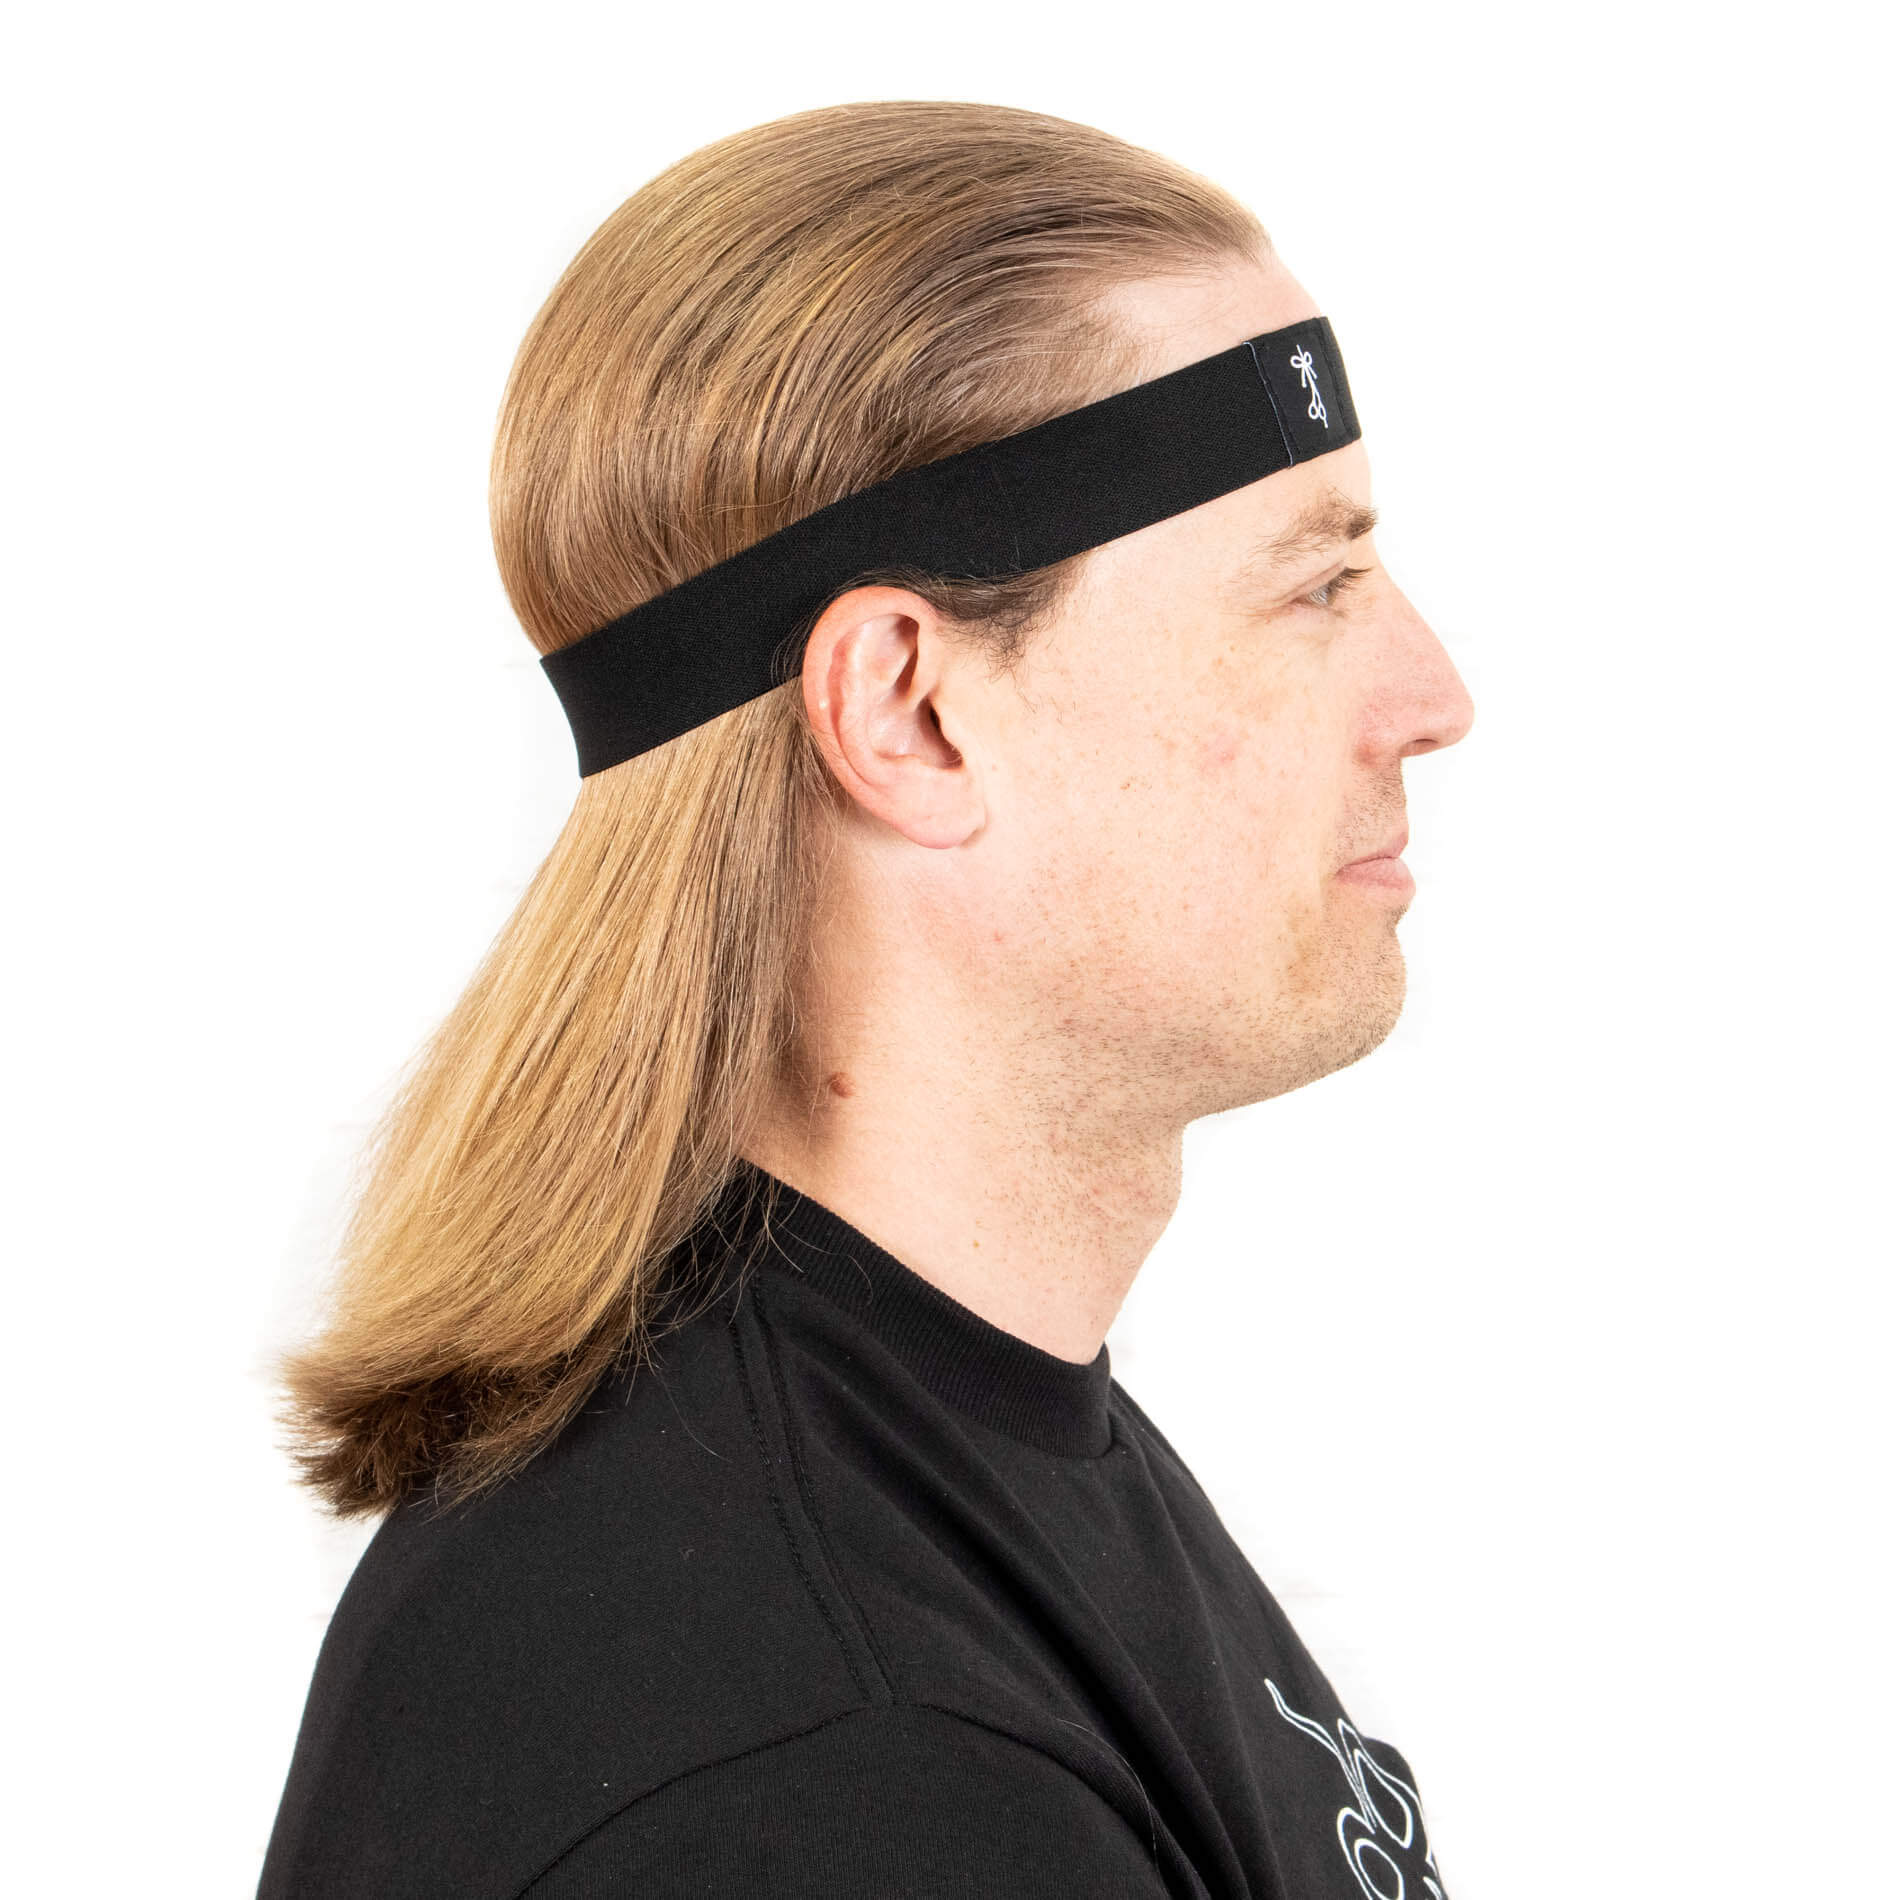 """The Black Belt"" Thick Black Headband For Men with Long Hair"